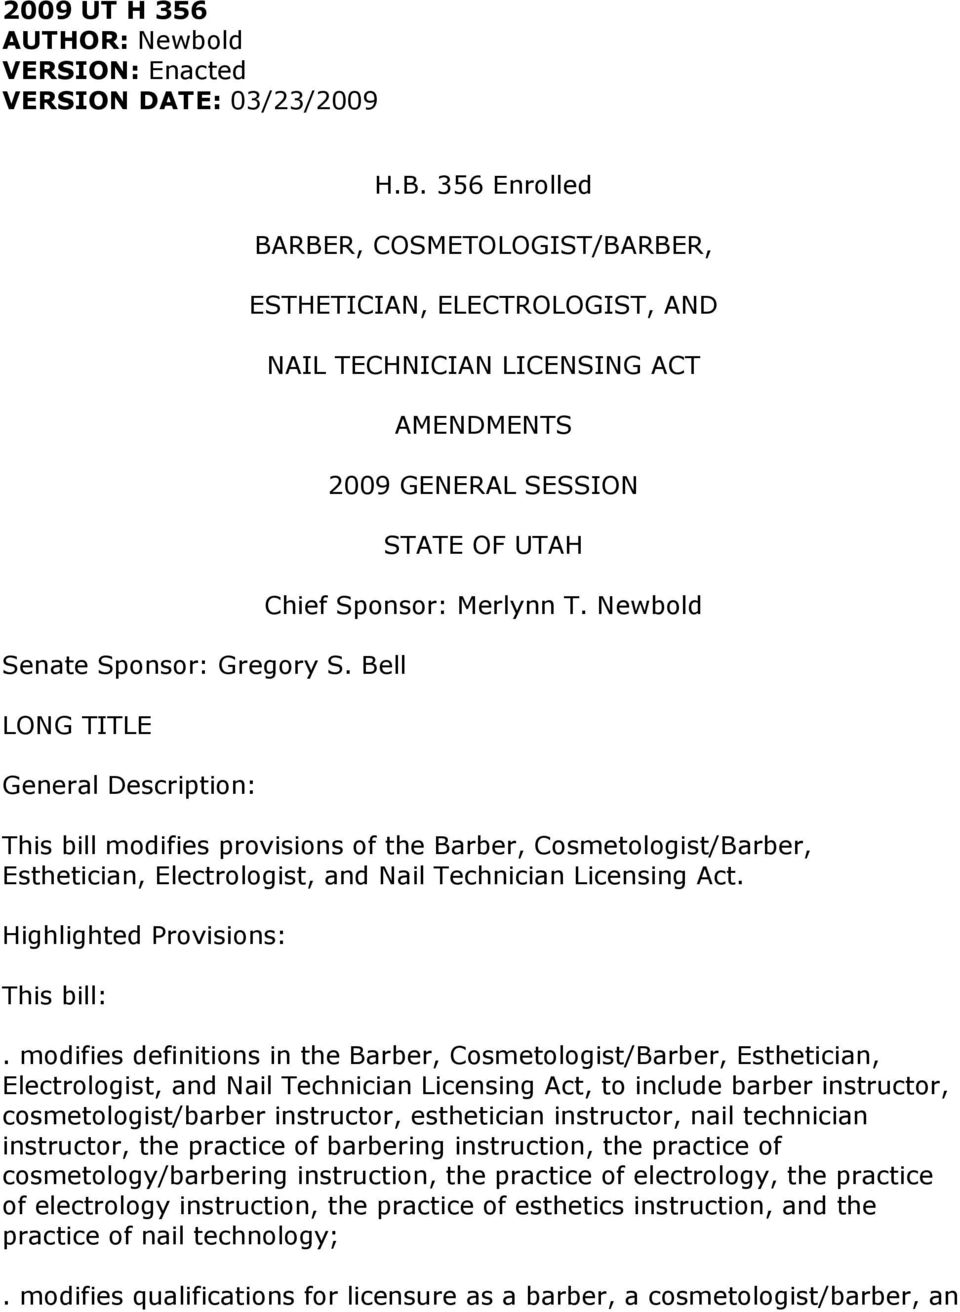 356 Enrolled BARBER, COSMETOLOGIST/BARBER, ESTHETICIAN, ELECTROLOGIST, AND NAIL TECHNICIAN LICENSING ACT AMENDMENTS 2009 GENERAL SESSION STATE OF UTAH Chief Sponsor: Merlynn T.